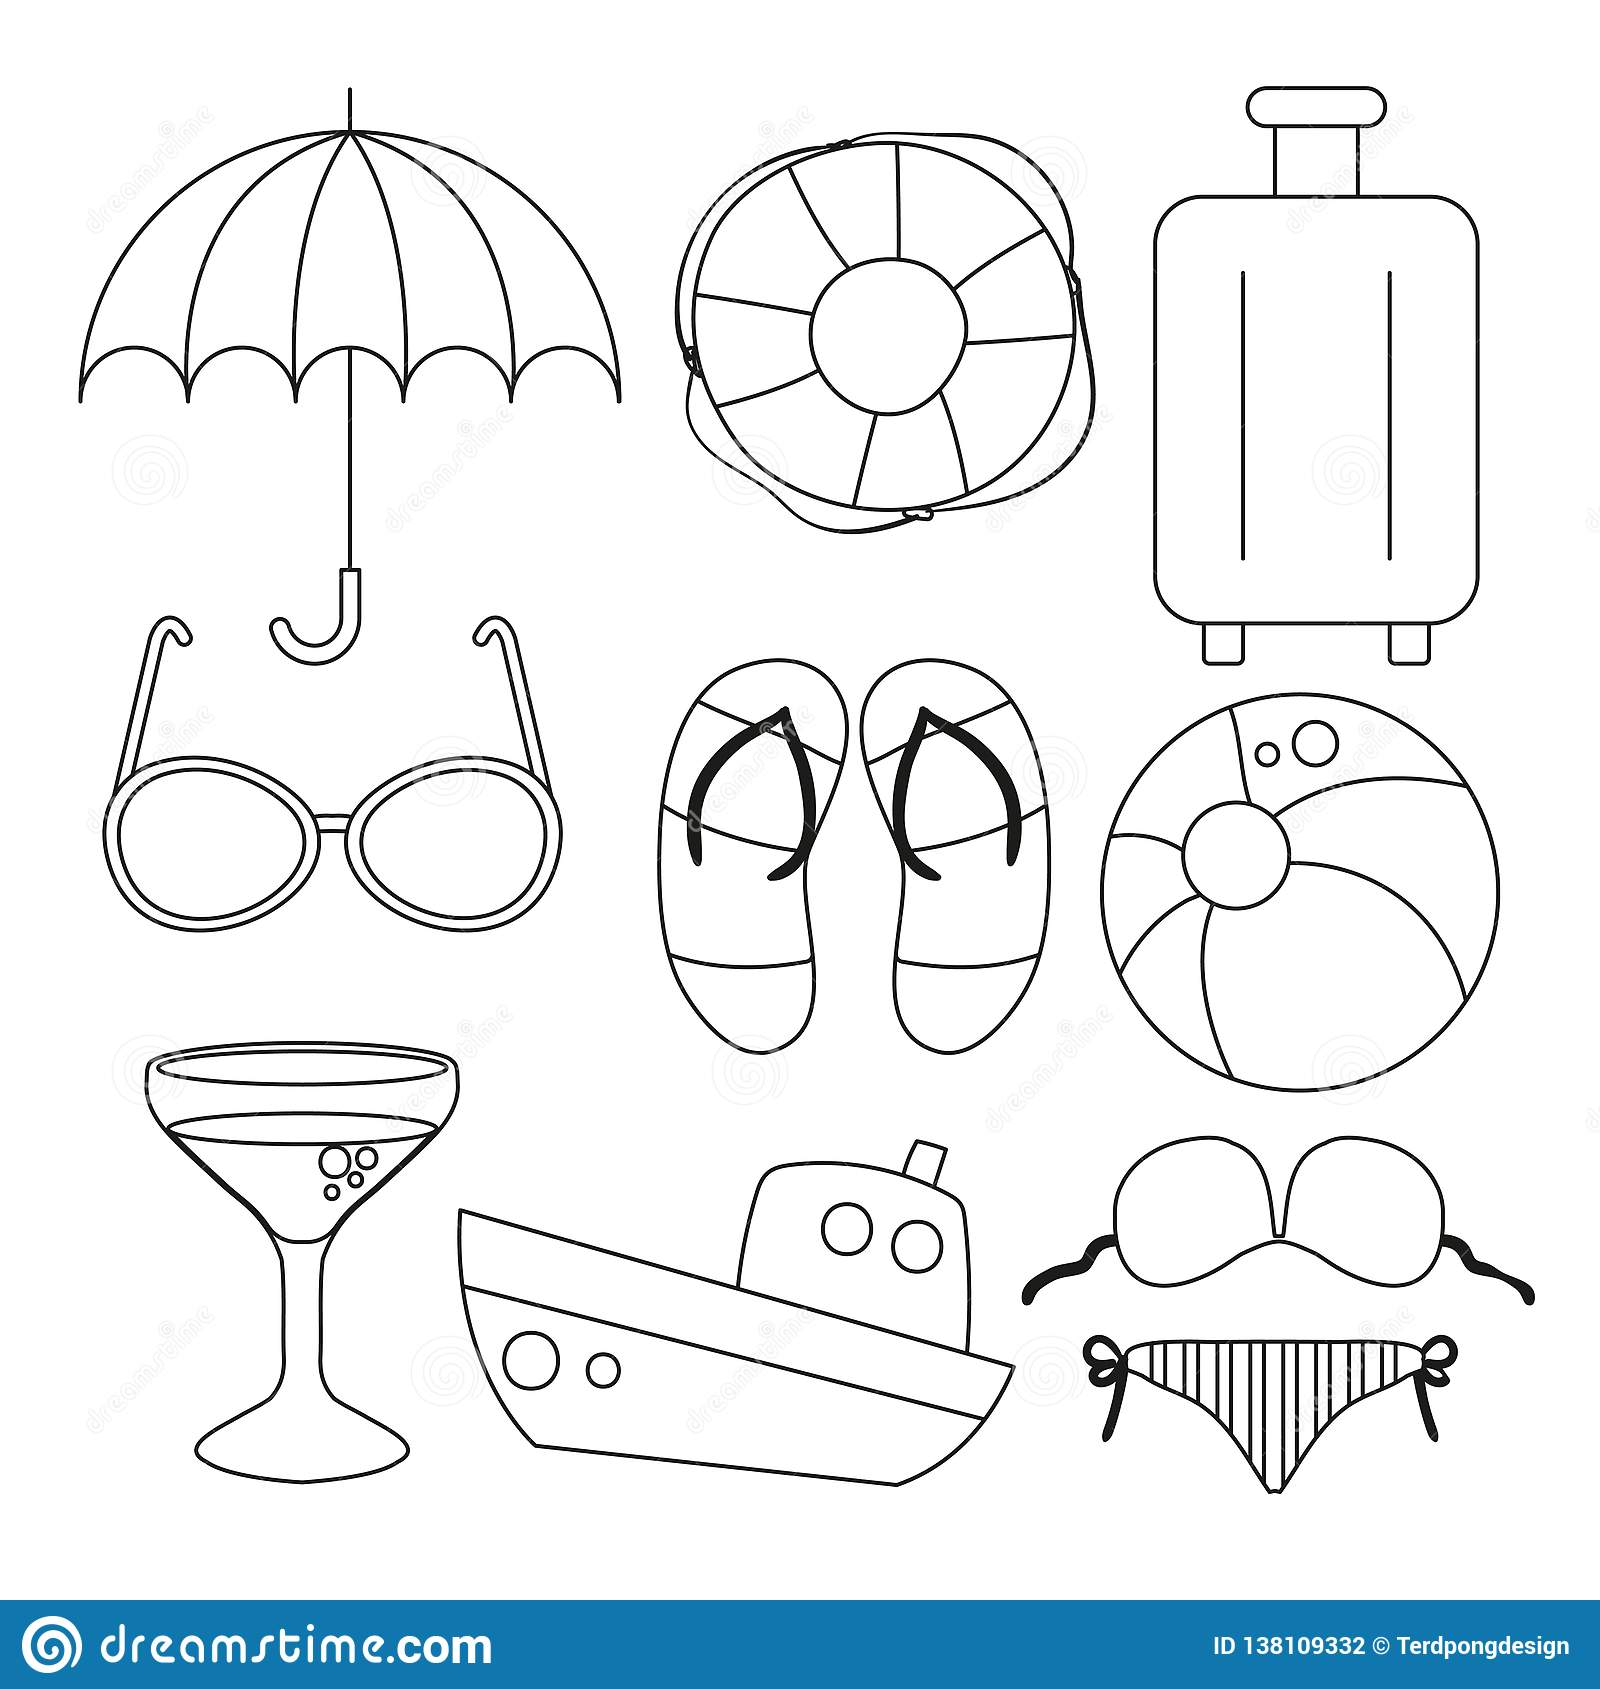 Beach Toy Worksheet Vector Design Stock Illustration